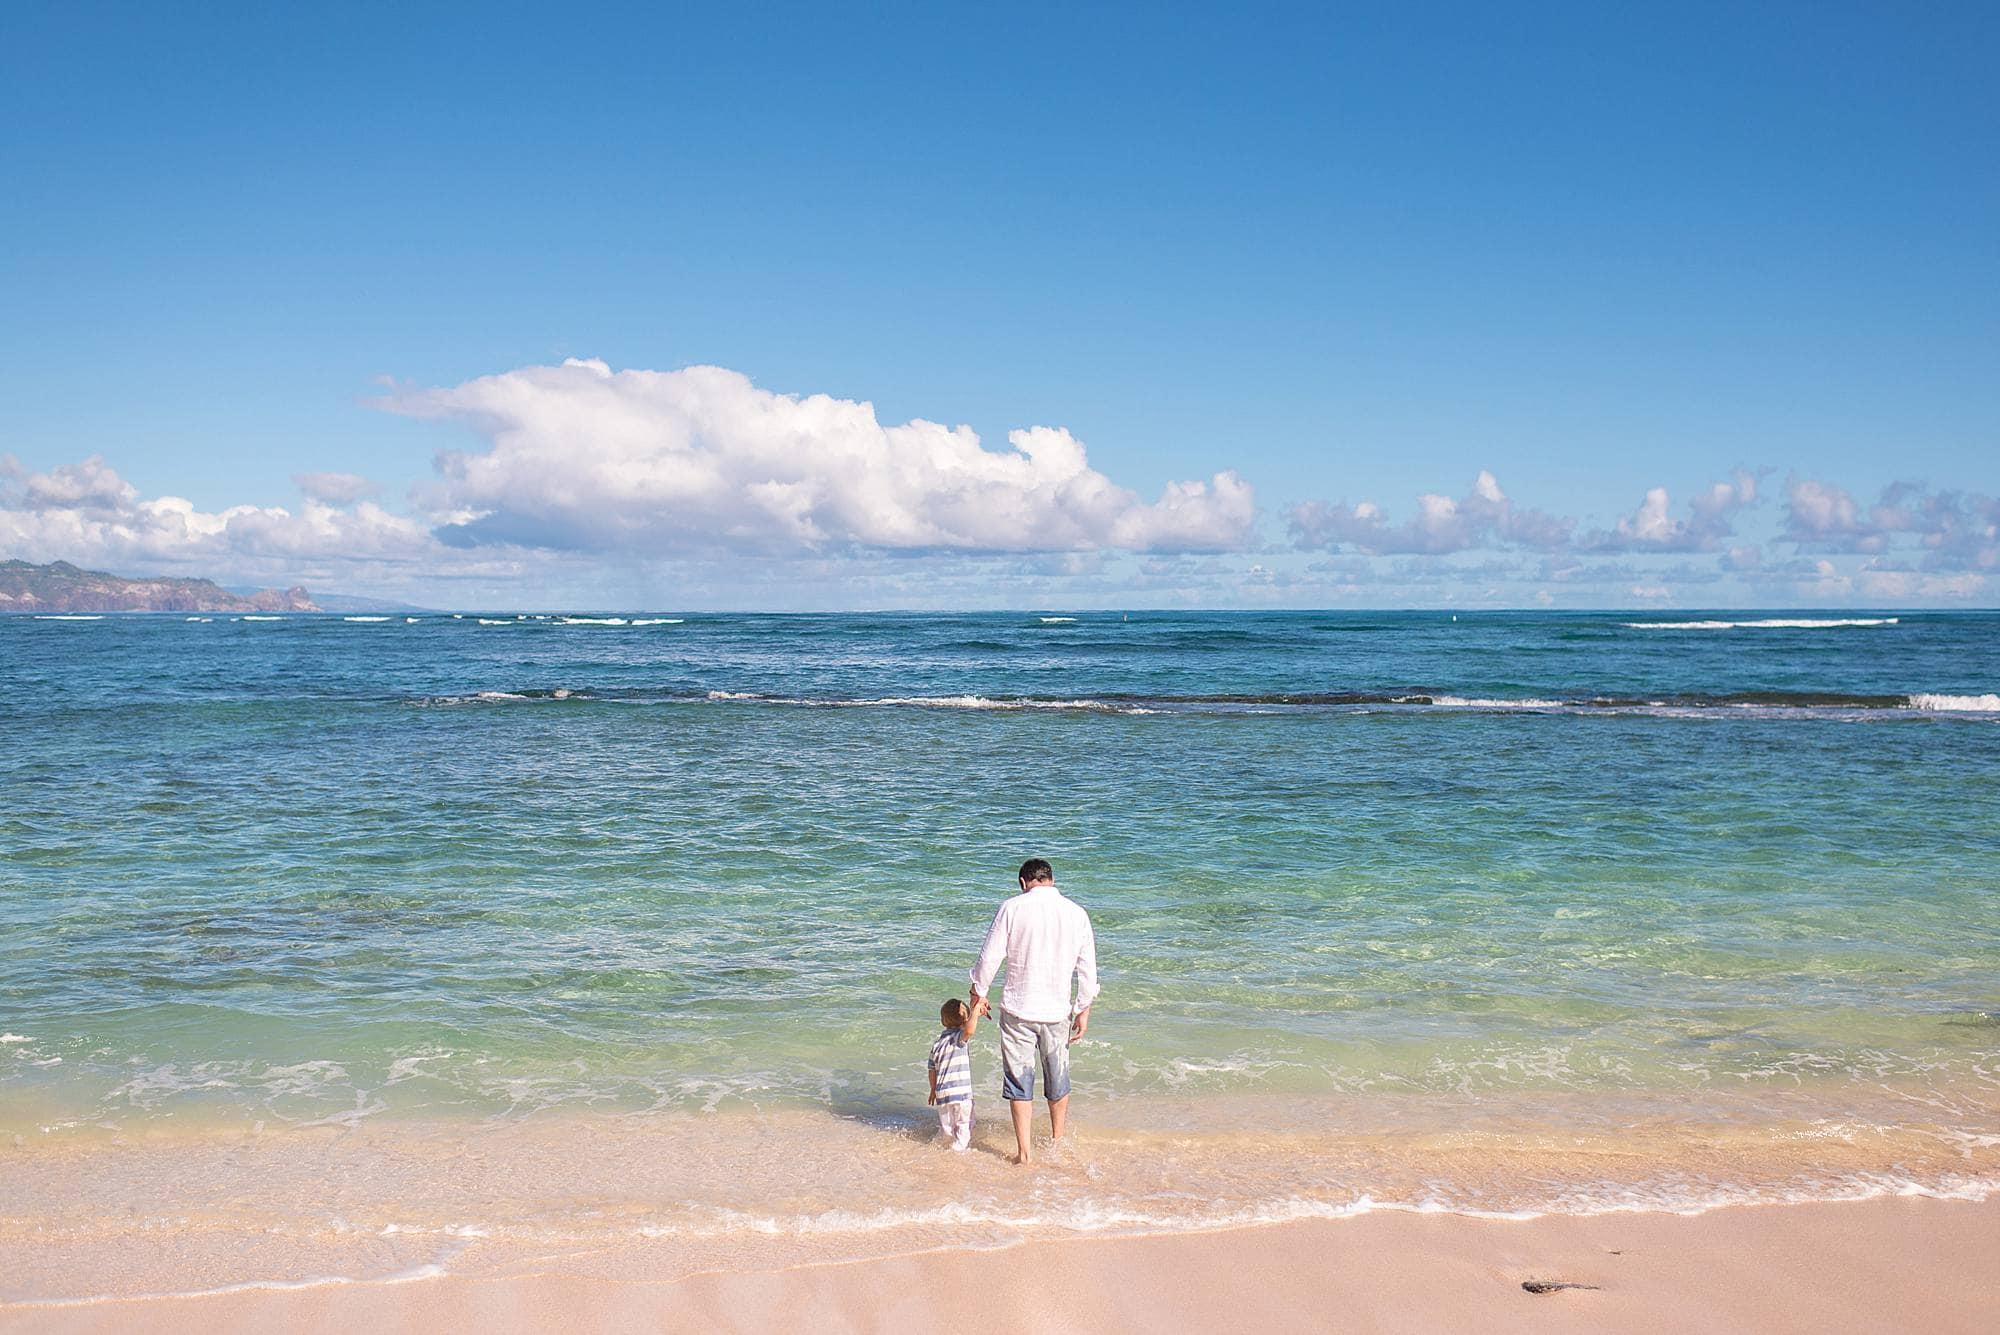 father and son on beach in maui, hawaii